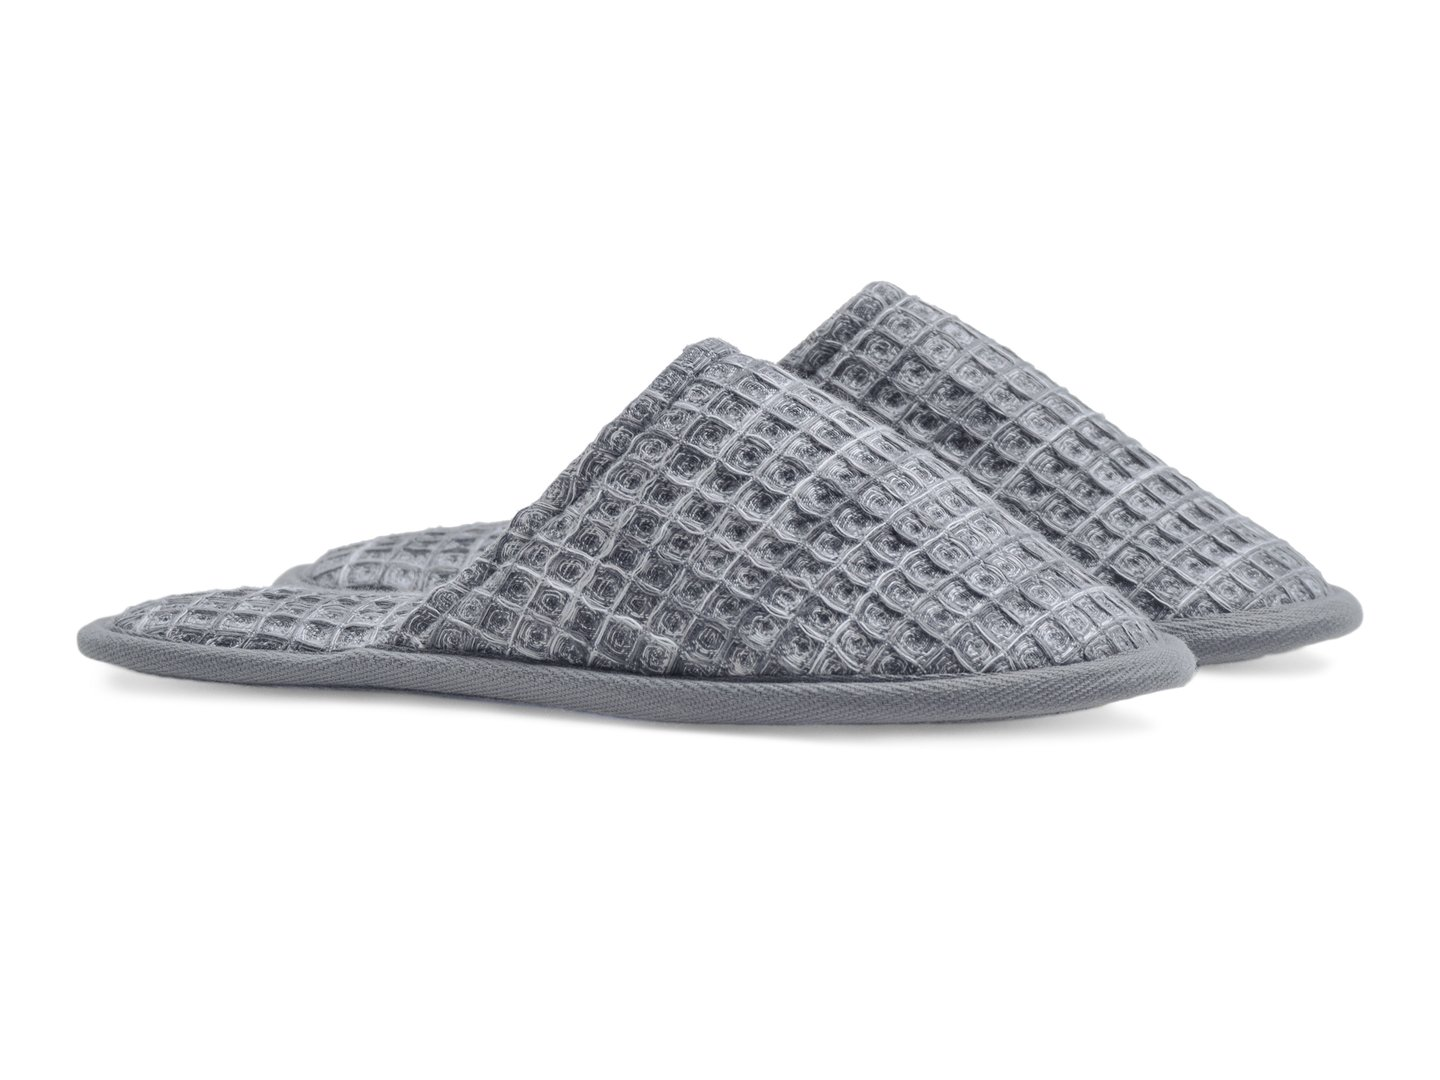 waffle-slippers-cotton-grey-lp-000_1440x